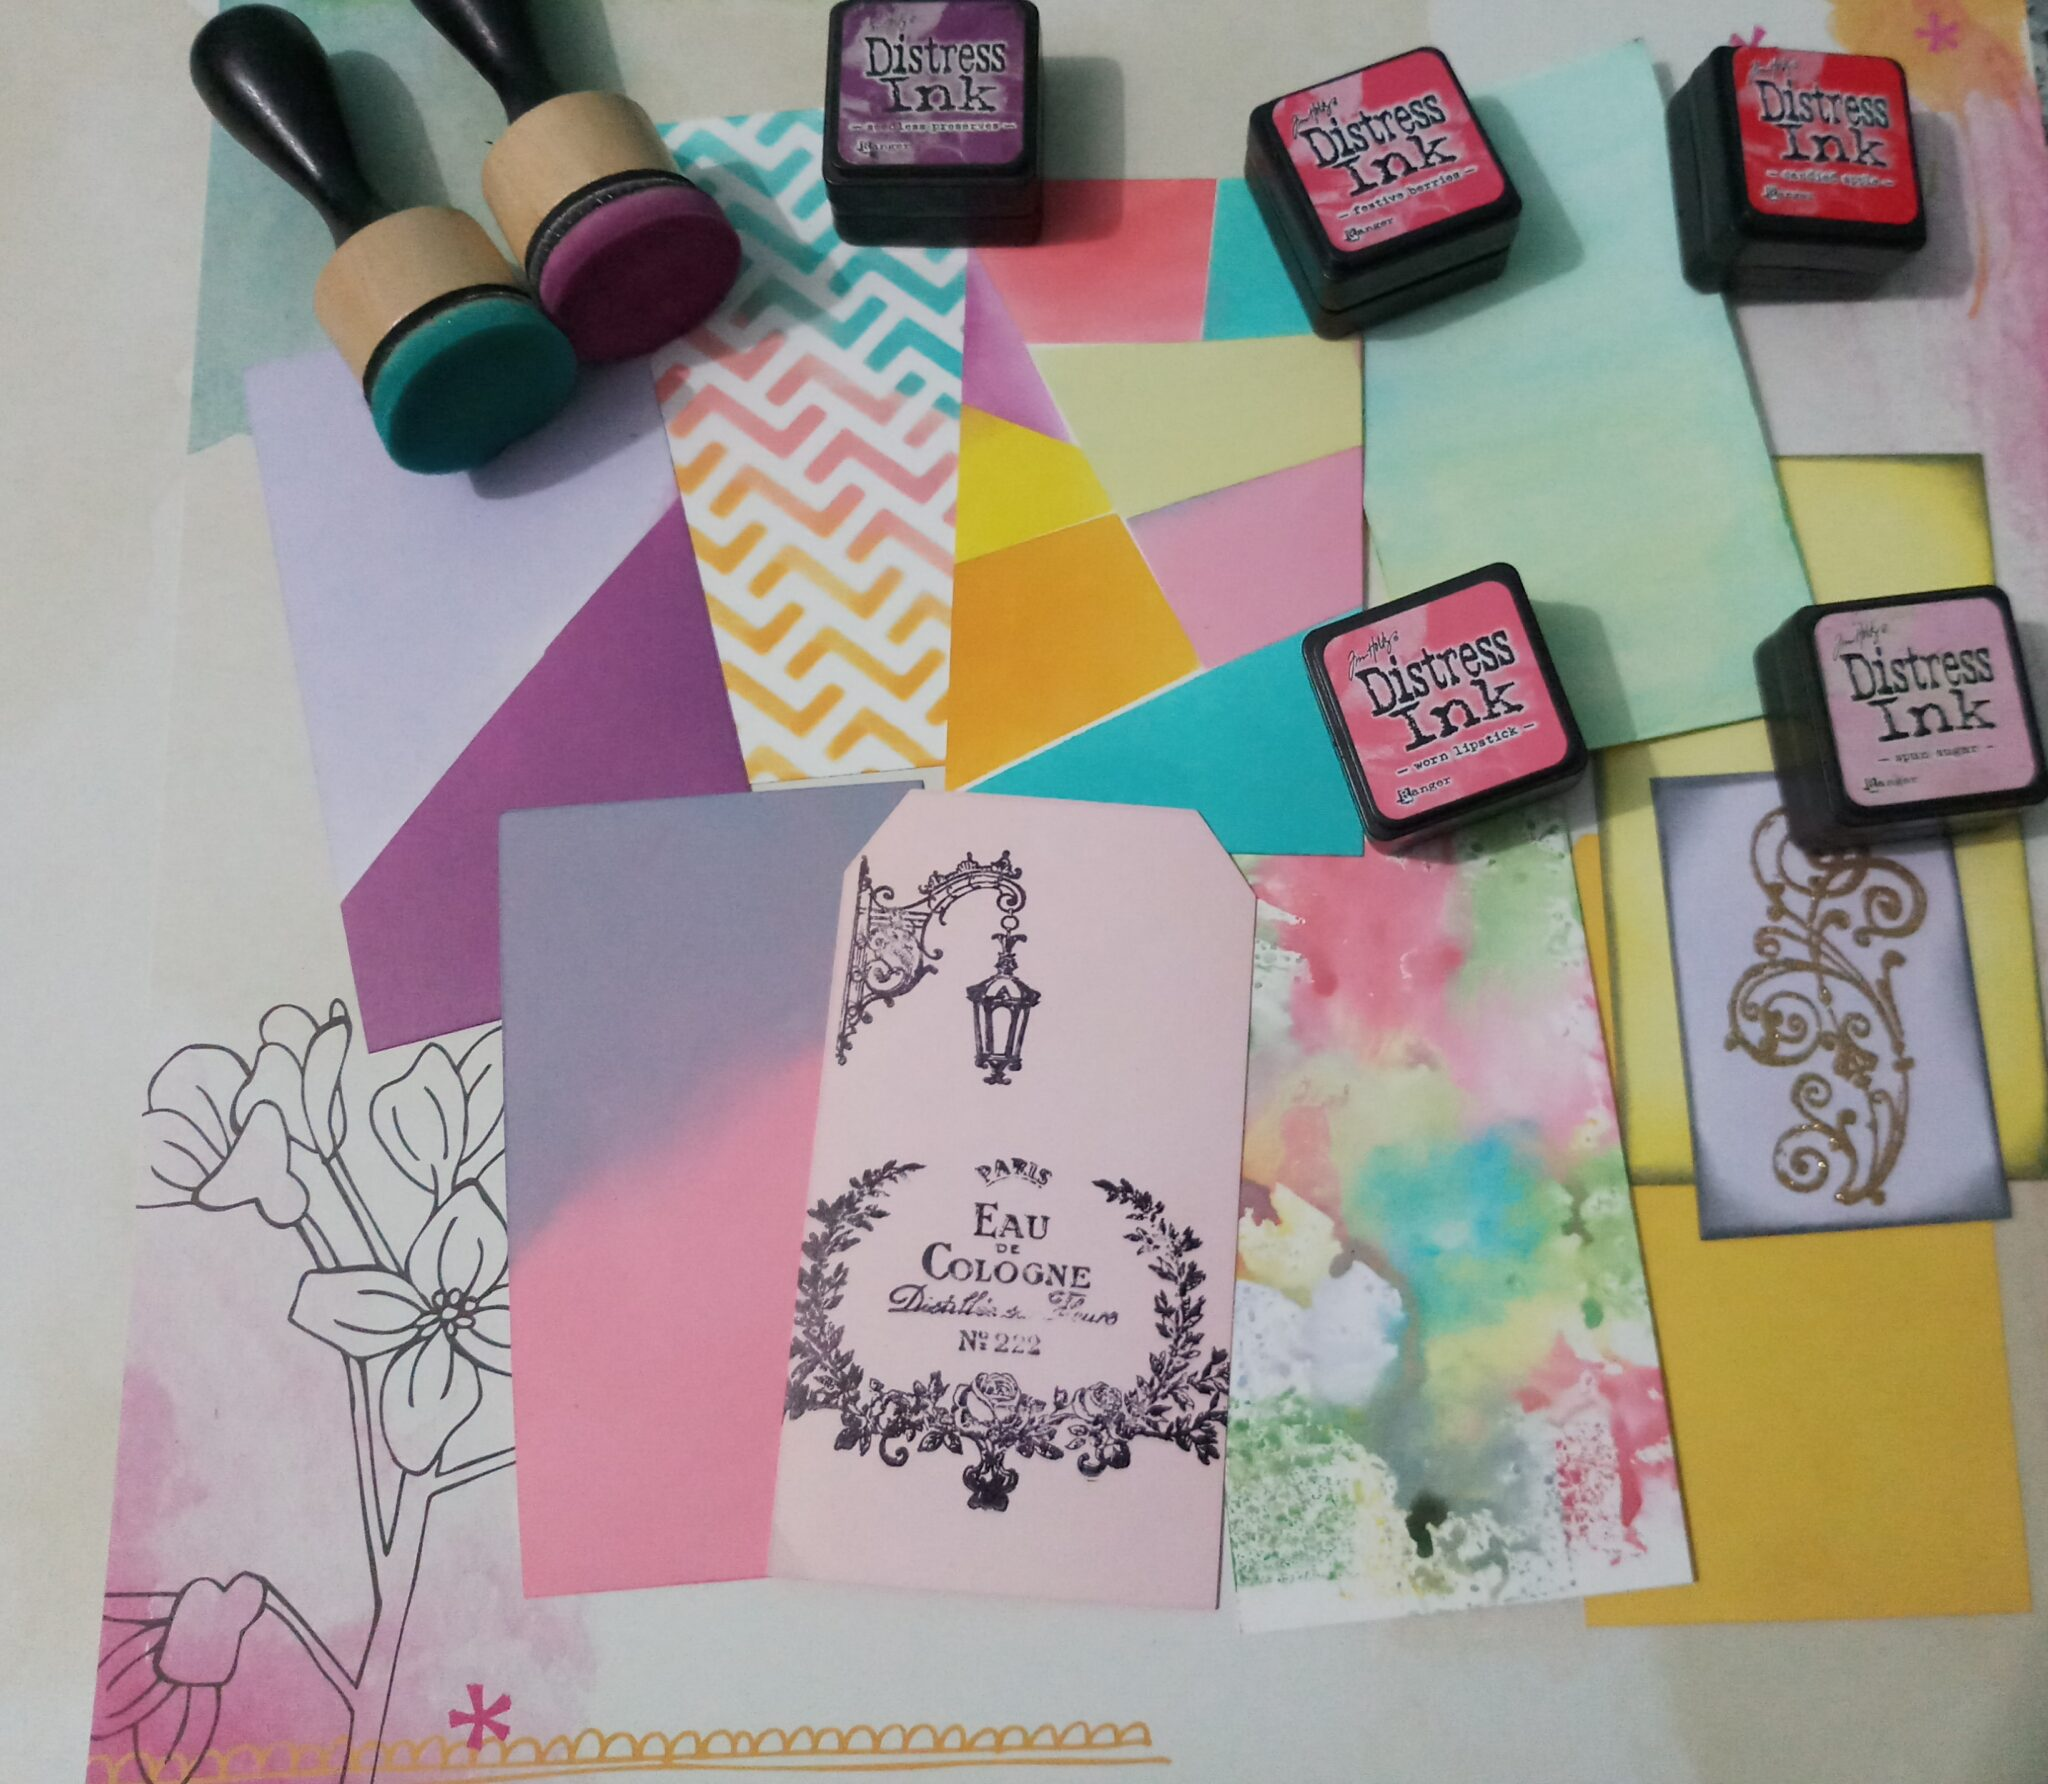 Distress ink workshop